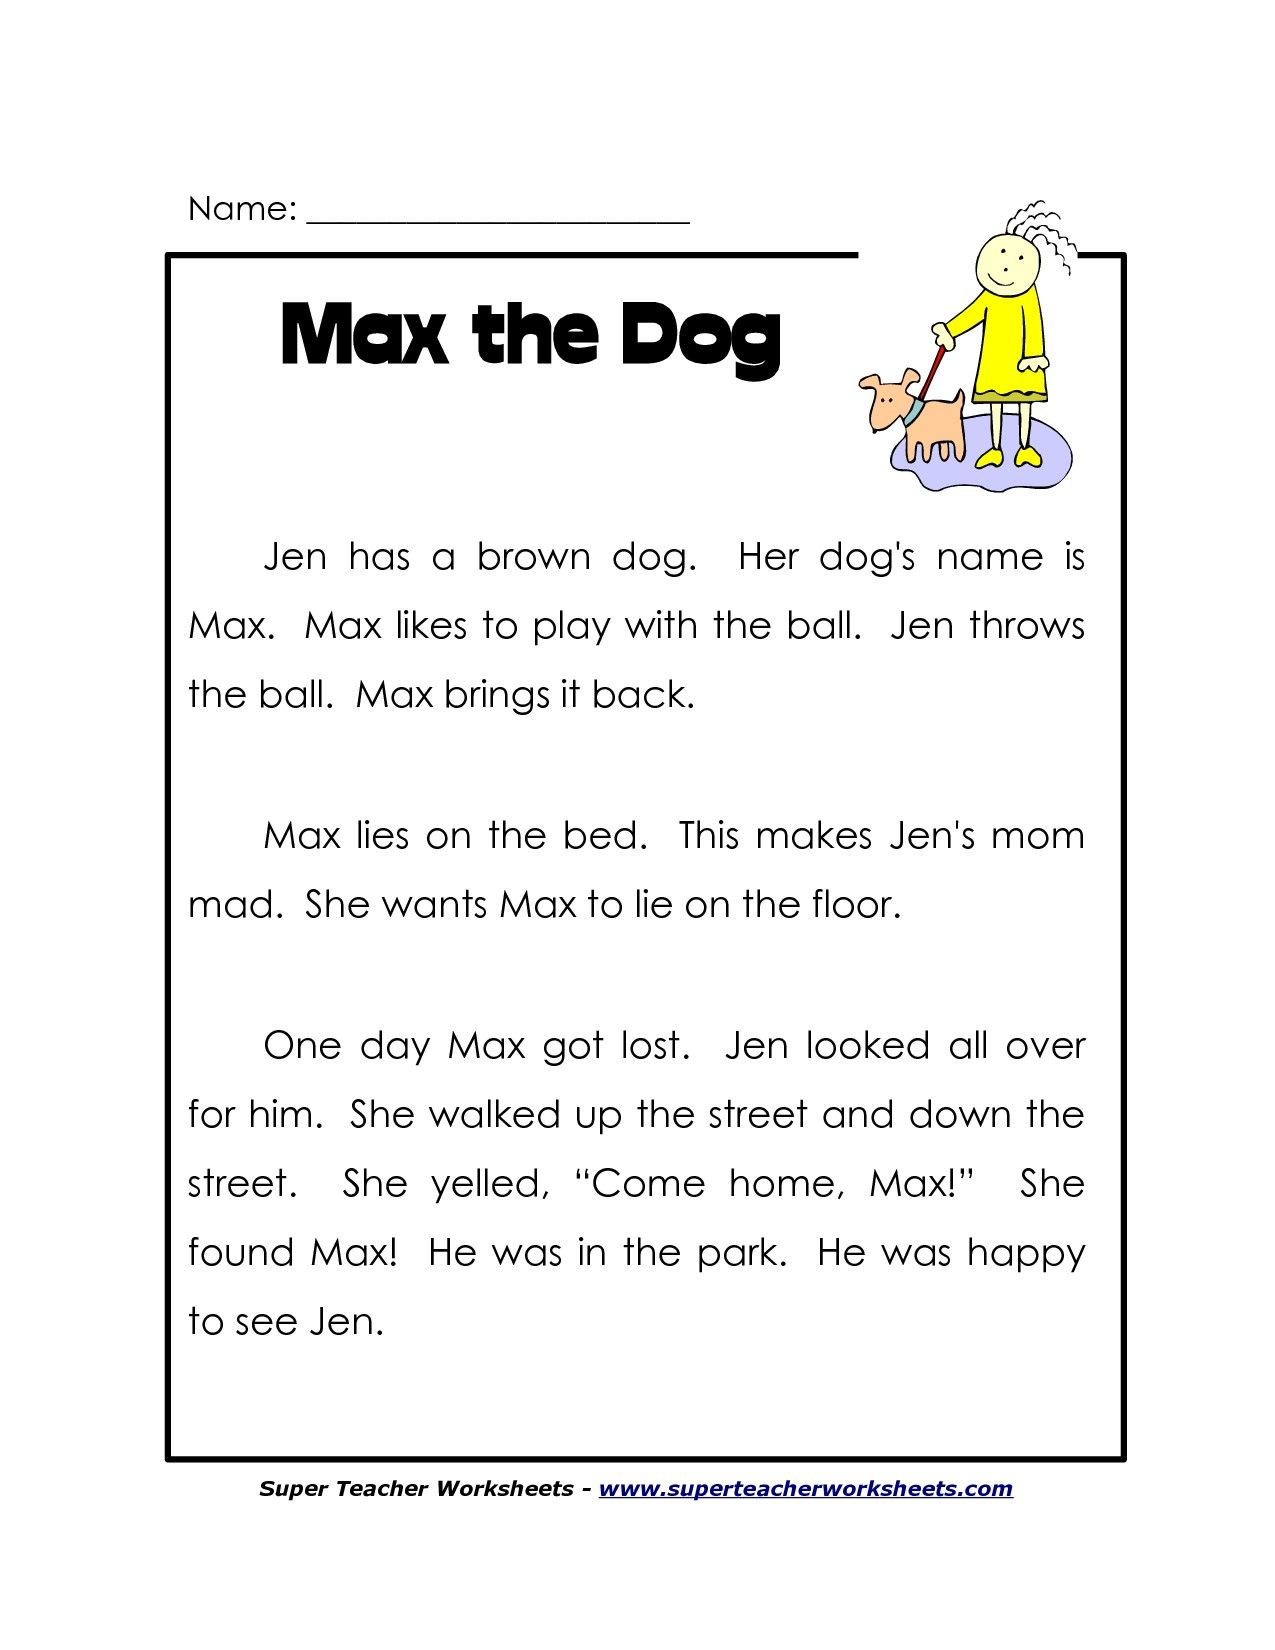 Worksheets Reading Worksheets For 1st Graders 1st grade reading worksheets free lots more on superteacherworksheets com